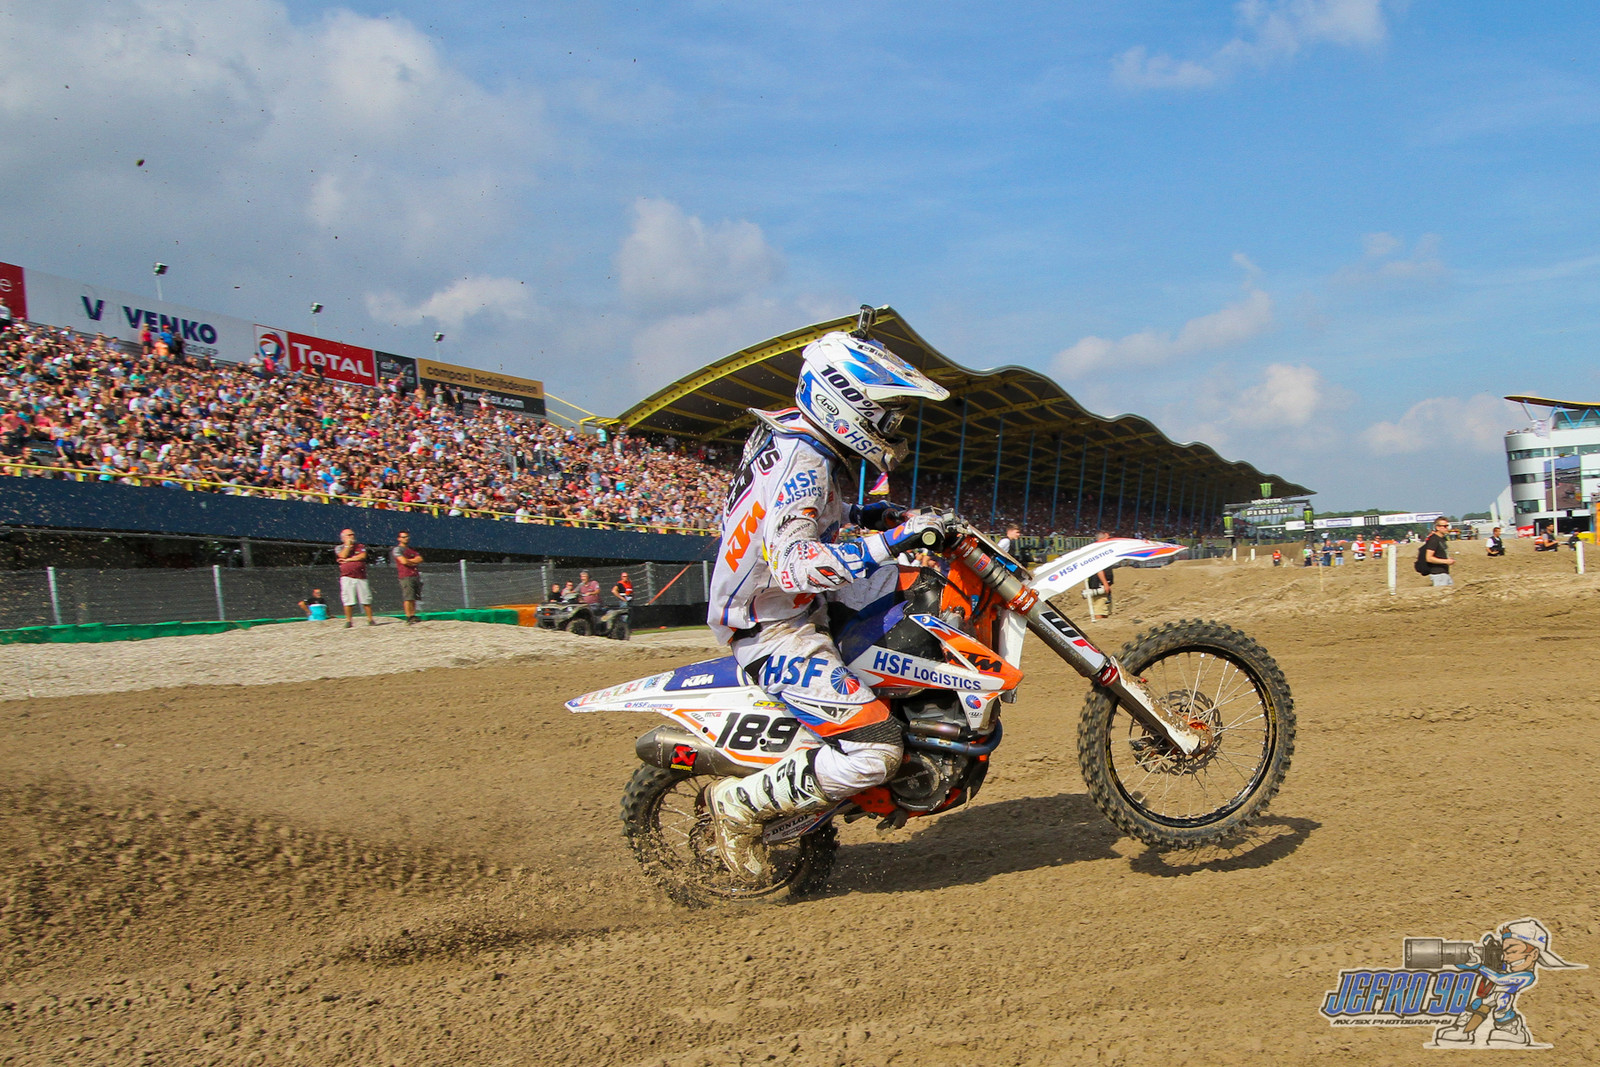 Brian Bogers - Photo Gallery: MXGP of the Netherlands - Motocross Pictures - Vital MX